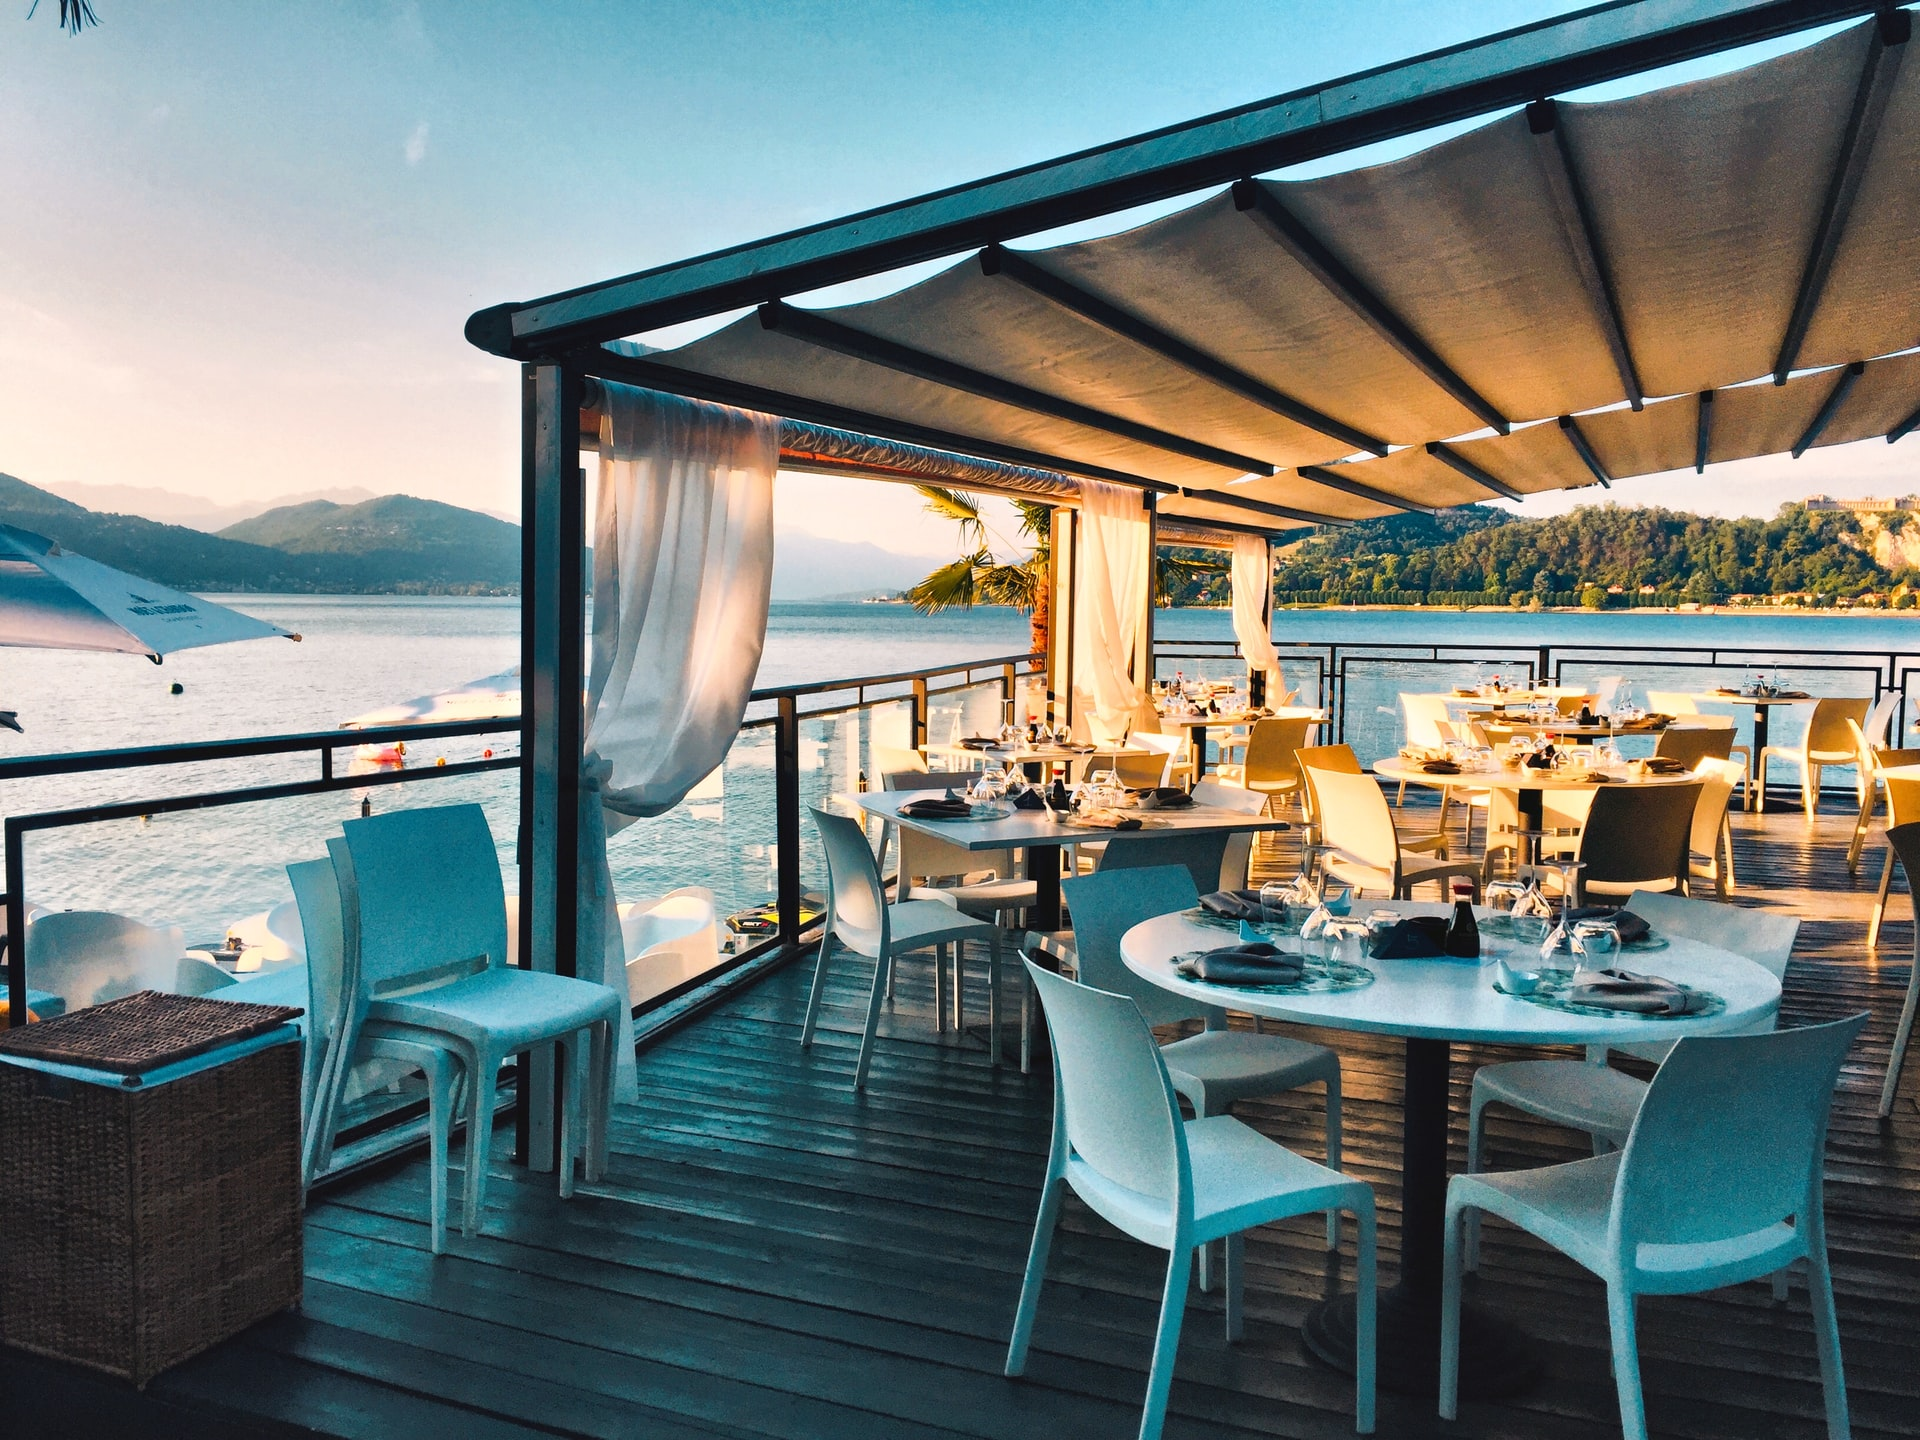 fine dining experience at outdoor restaurant